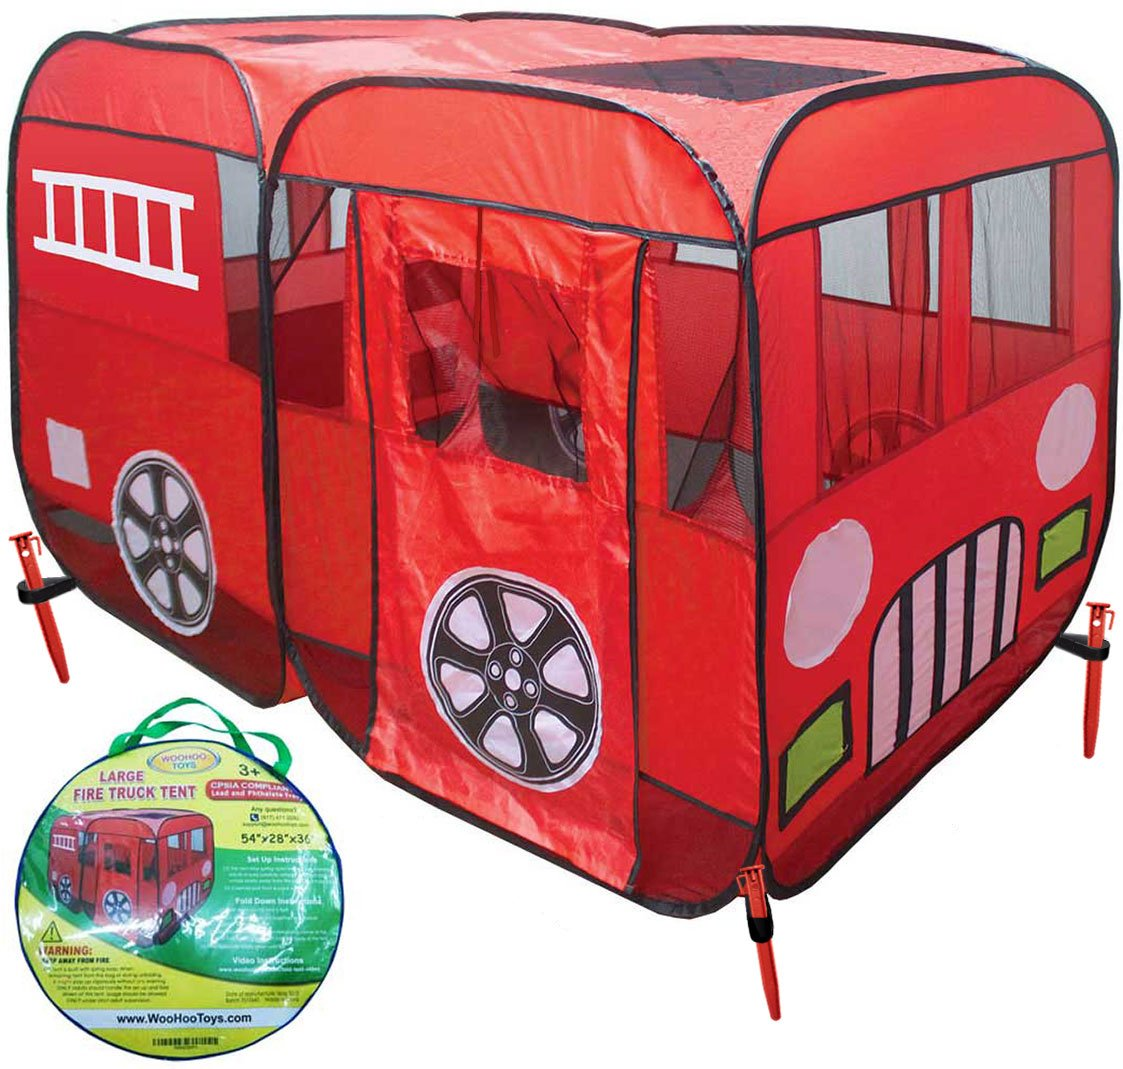 Large Children Fire Engine Truck Pop-Up Playhouse Play Tent (with Step) at Front Door Good for Ball Pit Tents for Toddlers Boys Girls Kids to Play Fireman Sam, Car Tent Can be Used Indoor or Outdoor WooHoo Toys